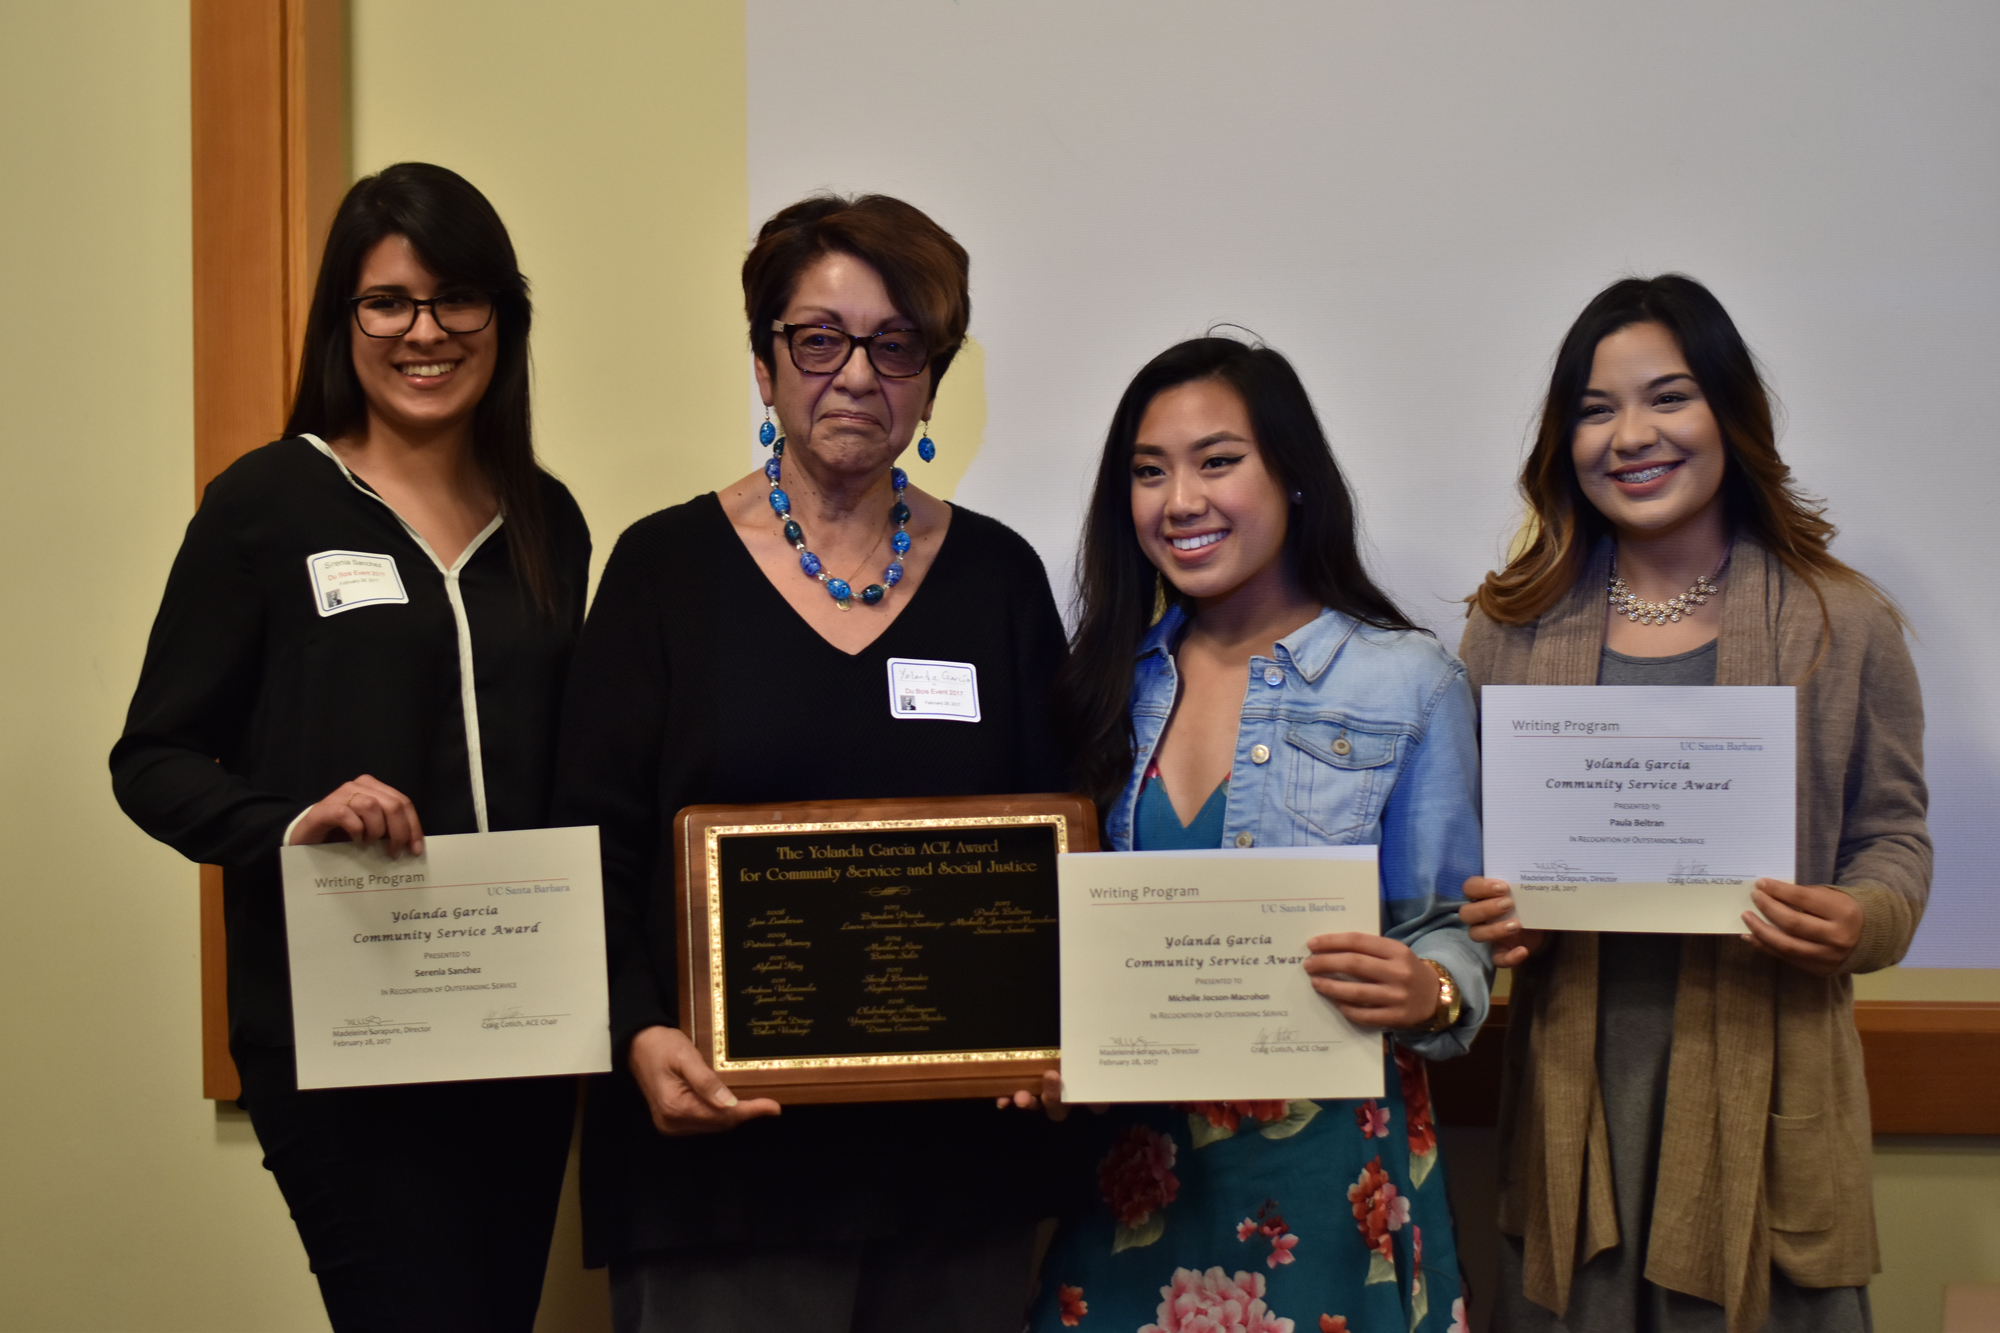 Annual Dubois Event Gets Students Thinking About Graduate